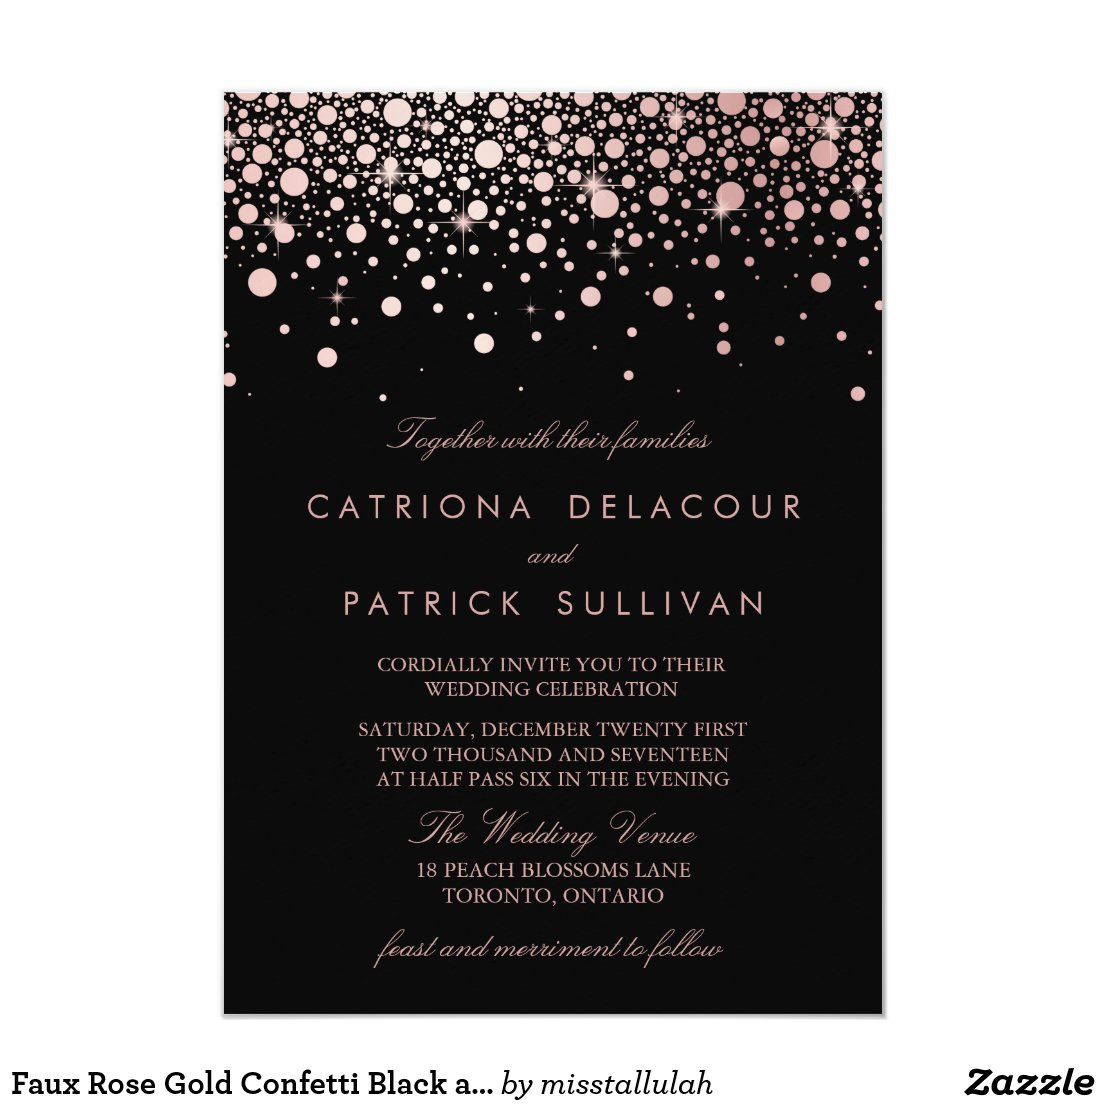 Faux Rose Gold Confetti Black and White Wedding Card